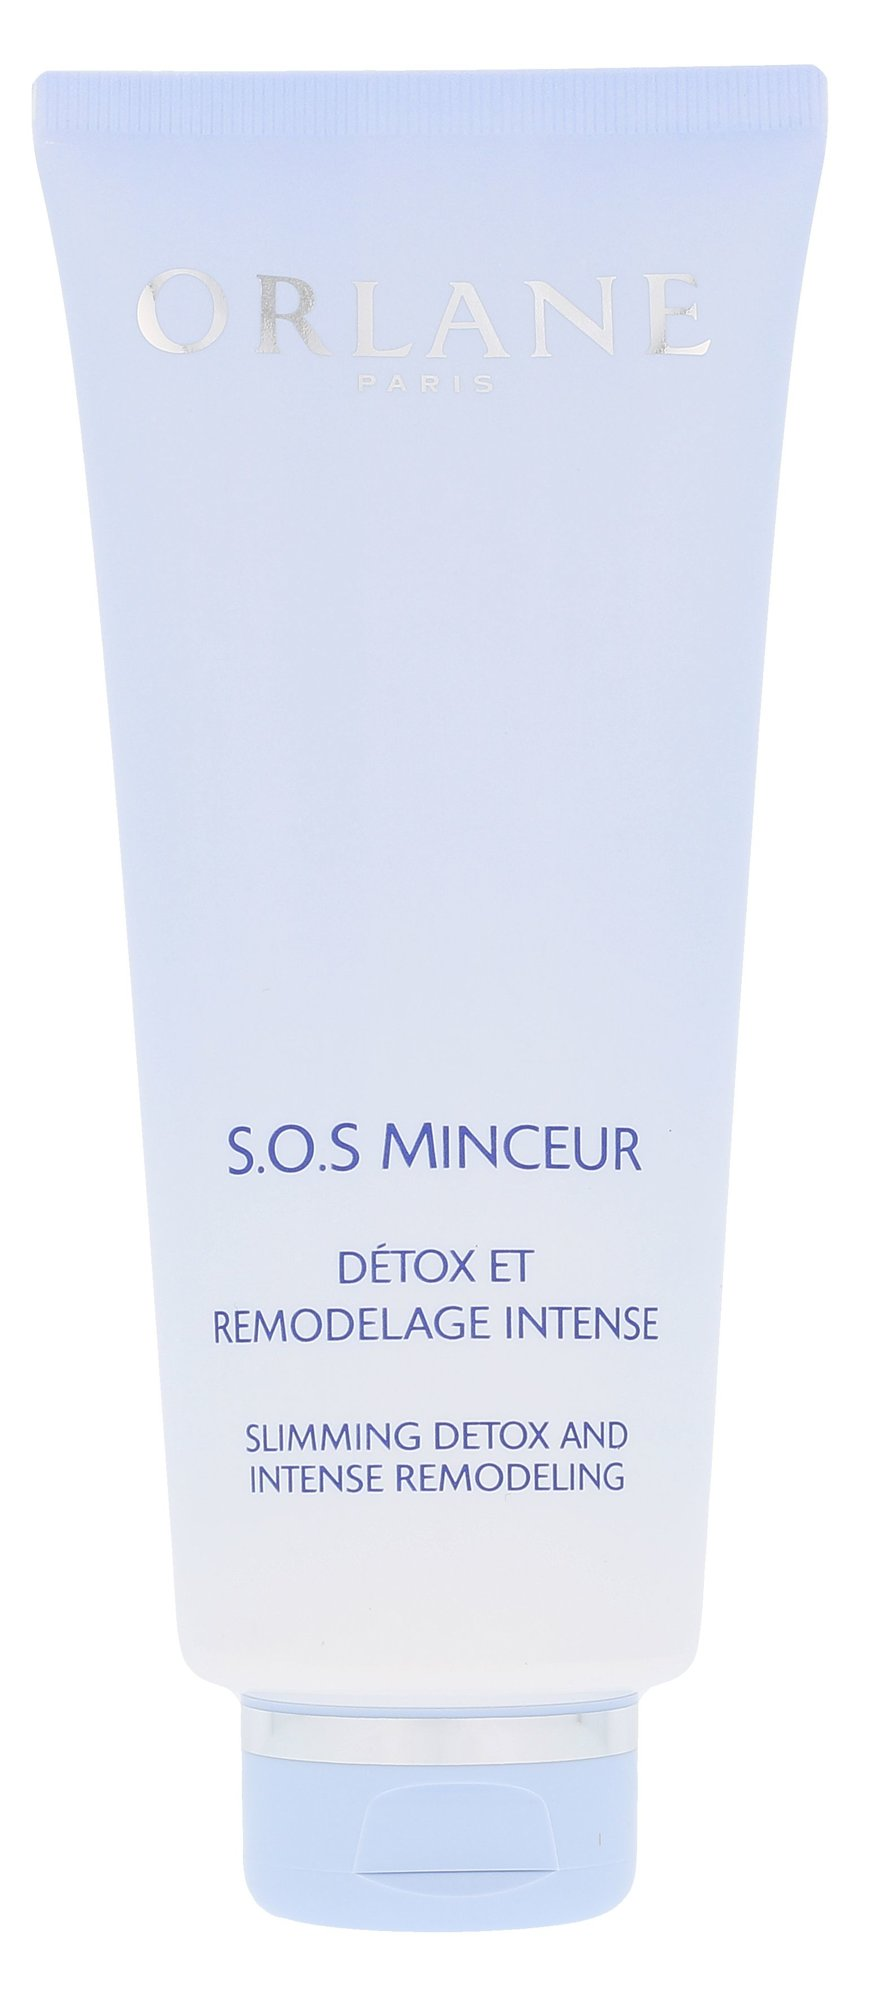 Orlane SOS Minceur Slimming Detox And Intense Remodeling Cosmetic 200ml